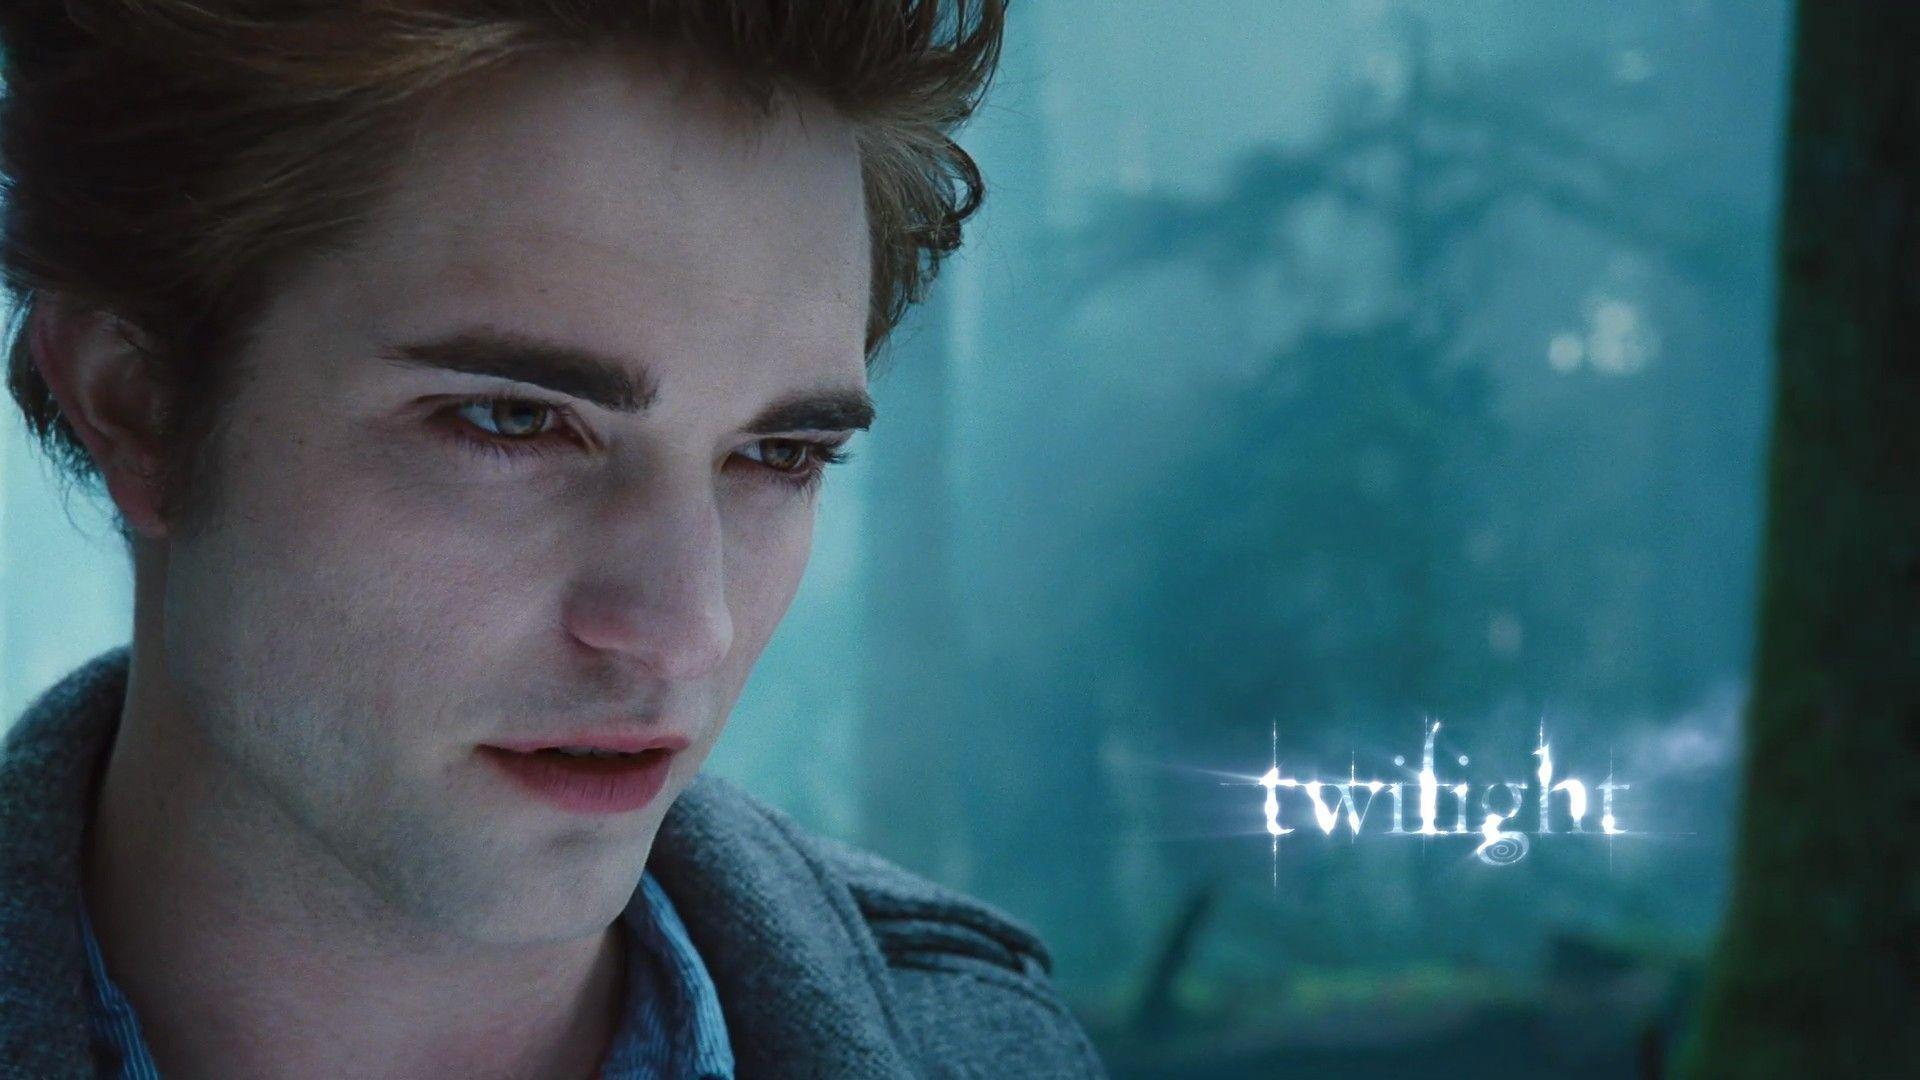 robert pattinson twilight wallpapers - wallpaper cave